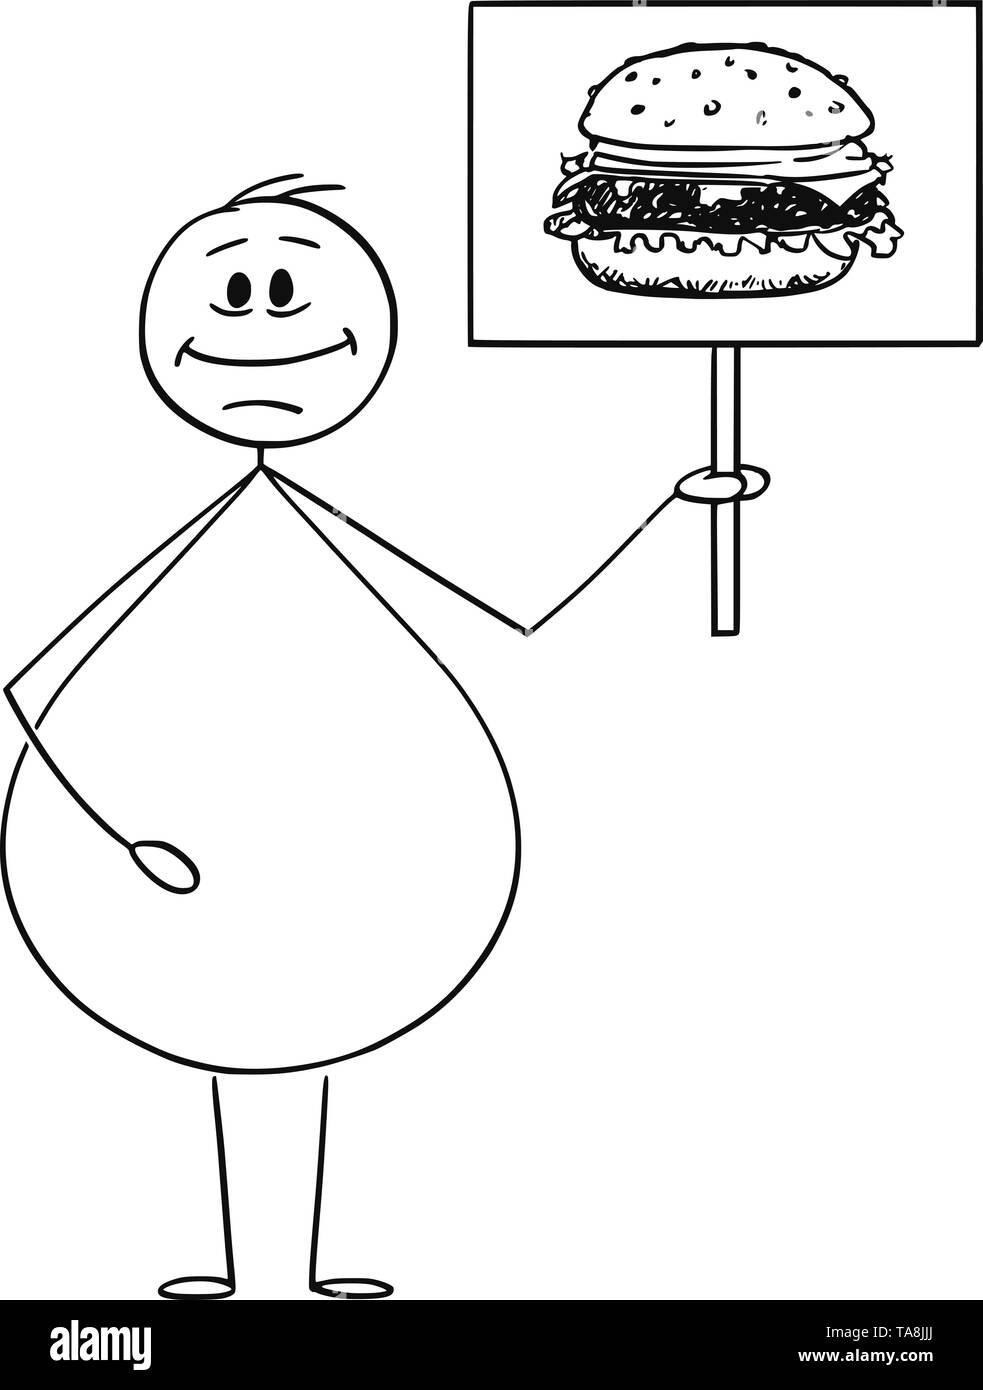 Vector cartoon stick figure drawing conceptual illustration of smiling overweight or obese man holding sign with hamburger or burger image. Junk food concept. - Stock Image